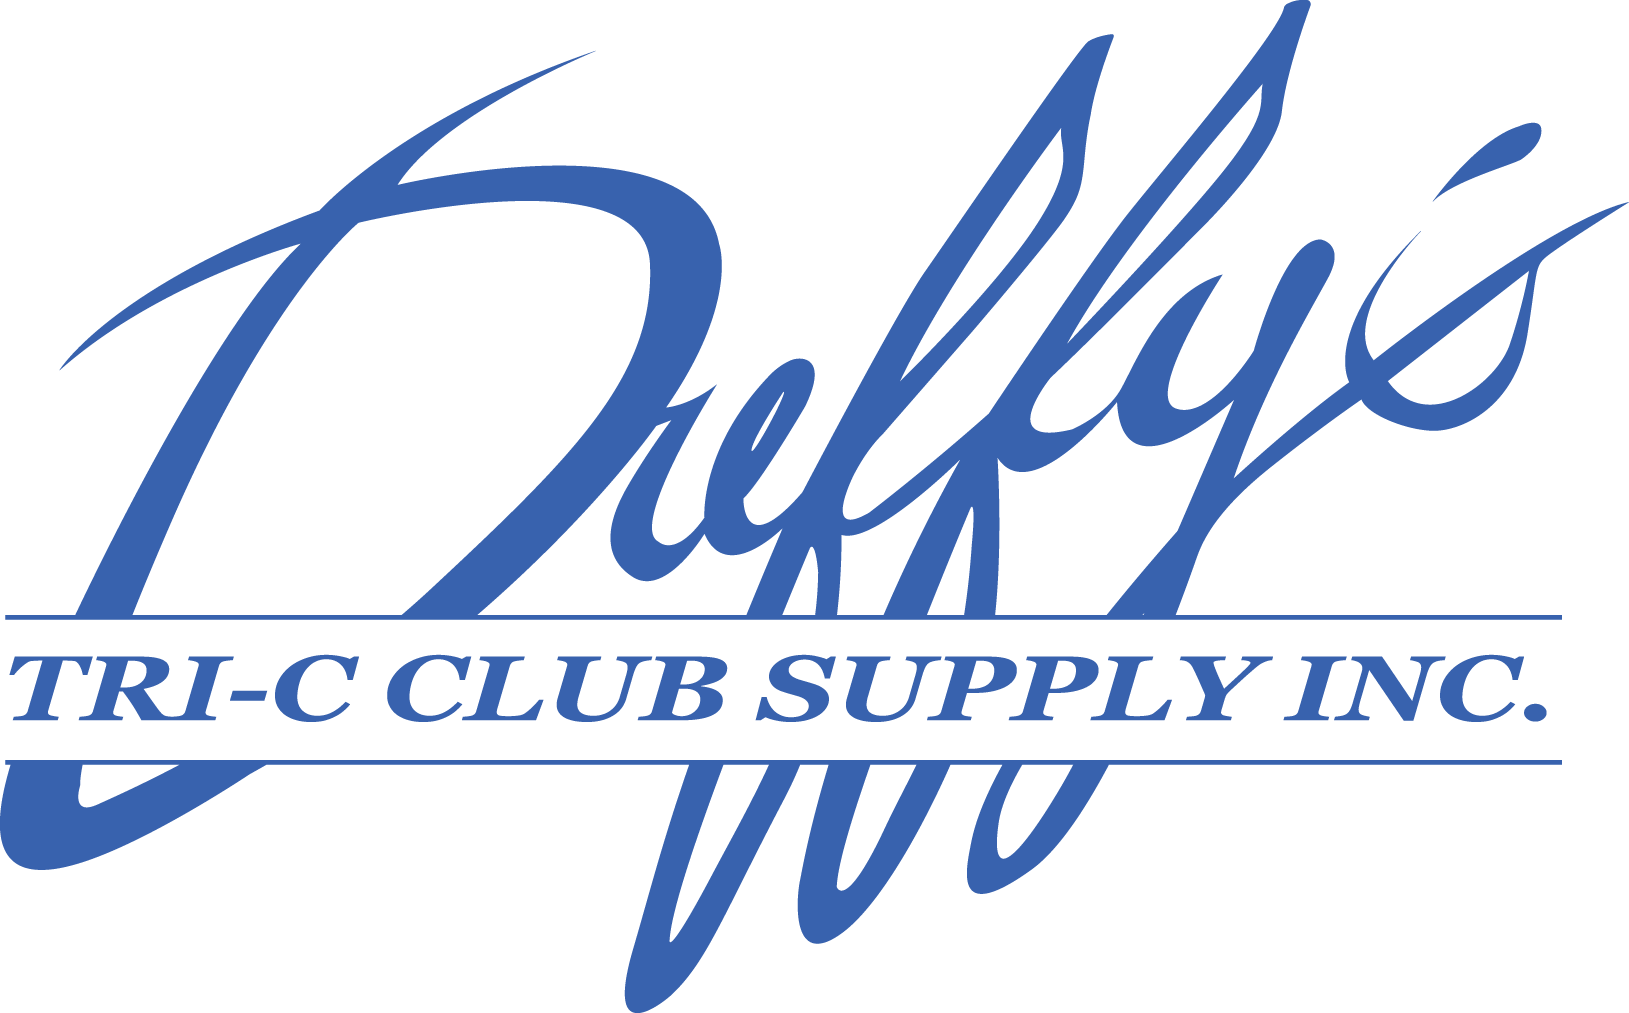 Duffy's-Tri-C Club Supply